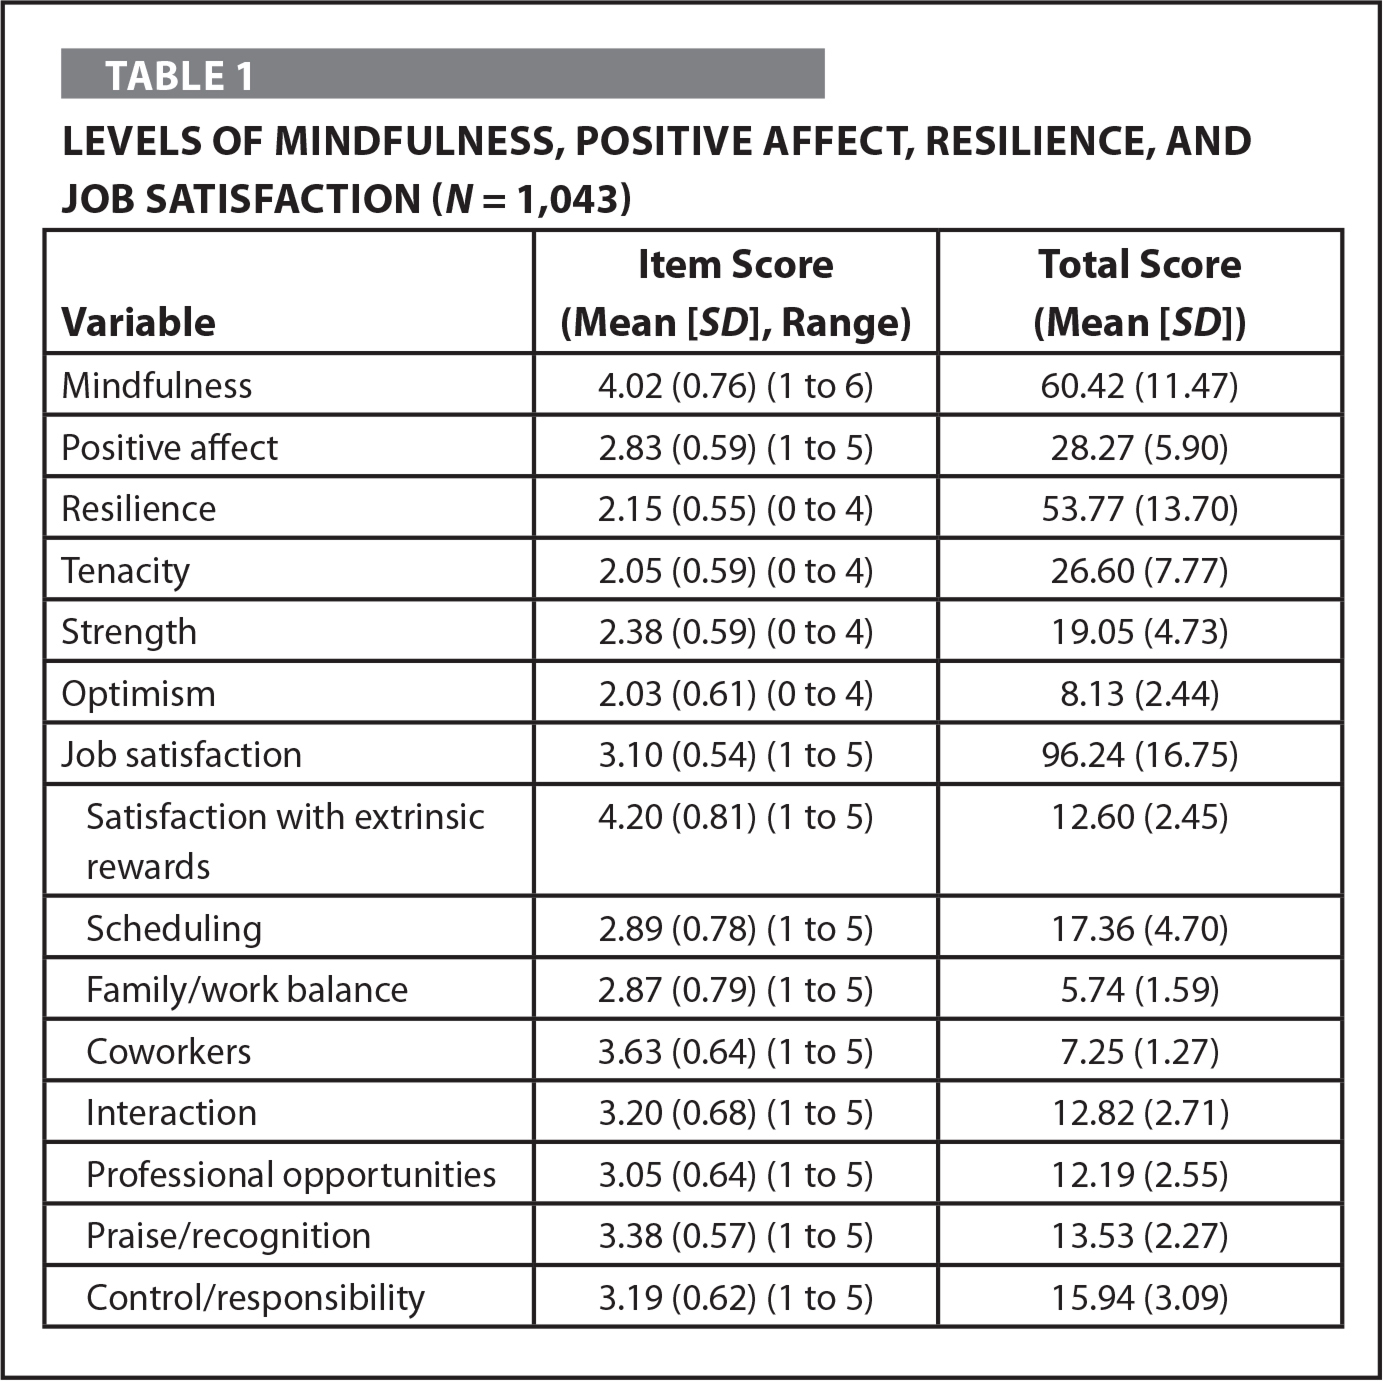 Levels of Mindfulness, Positive Affect, Resilience, and Job Satisfaction (N = 1,043)